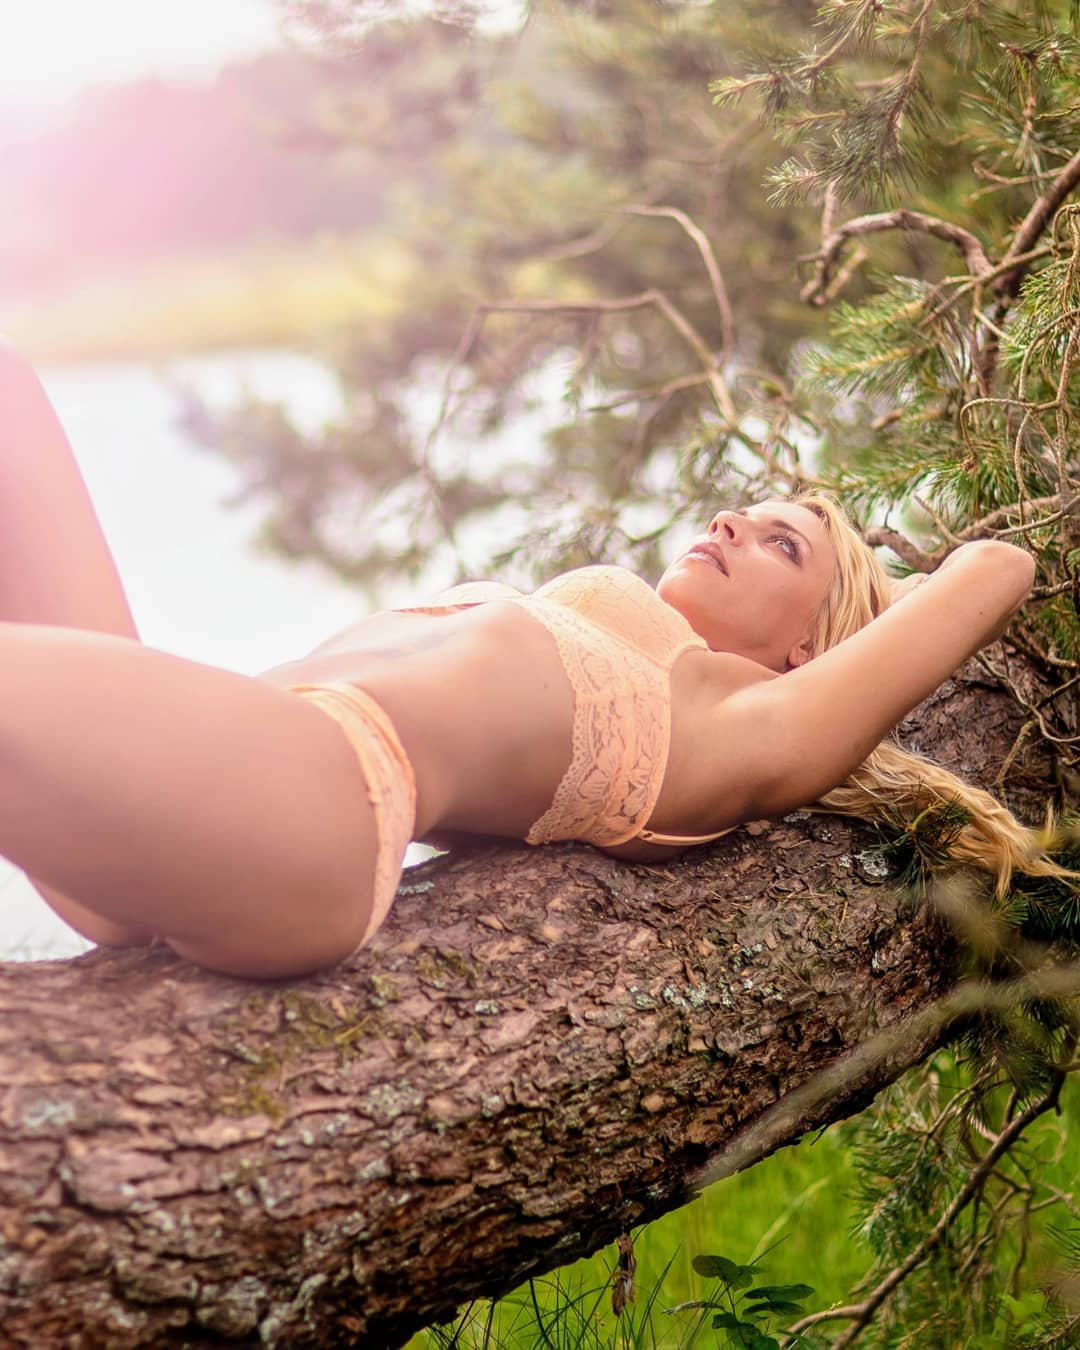 Beautiful tattooed Dutch fitness model and mom Willeke Bartels wearing peach lace lingerie lying on a log looking up with her arms up showing her toned abs and under arms